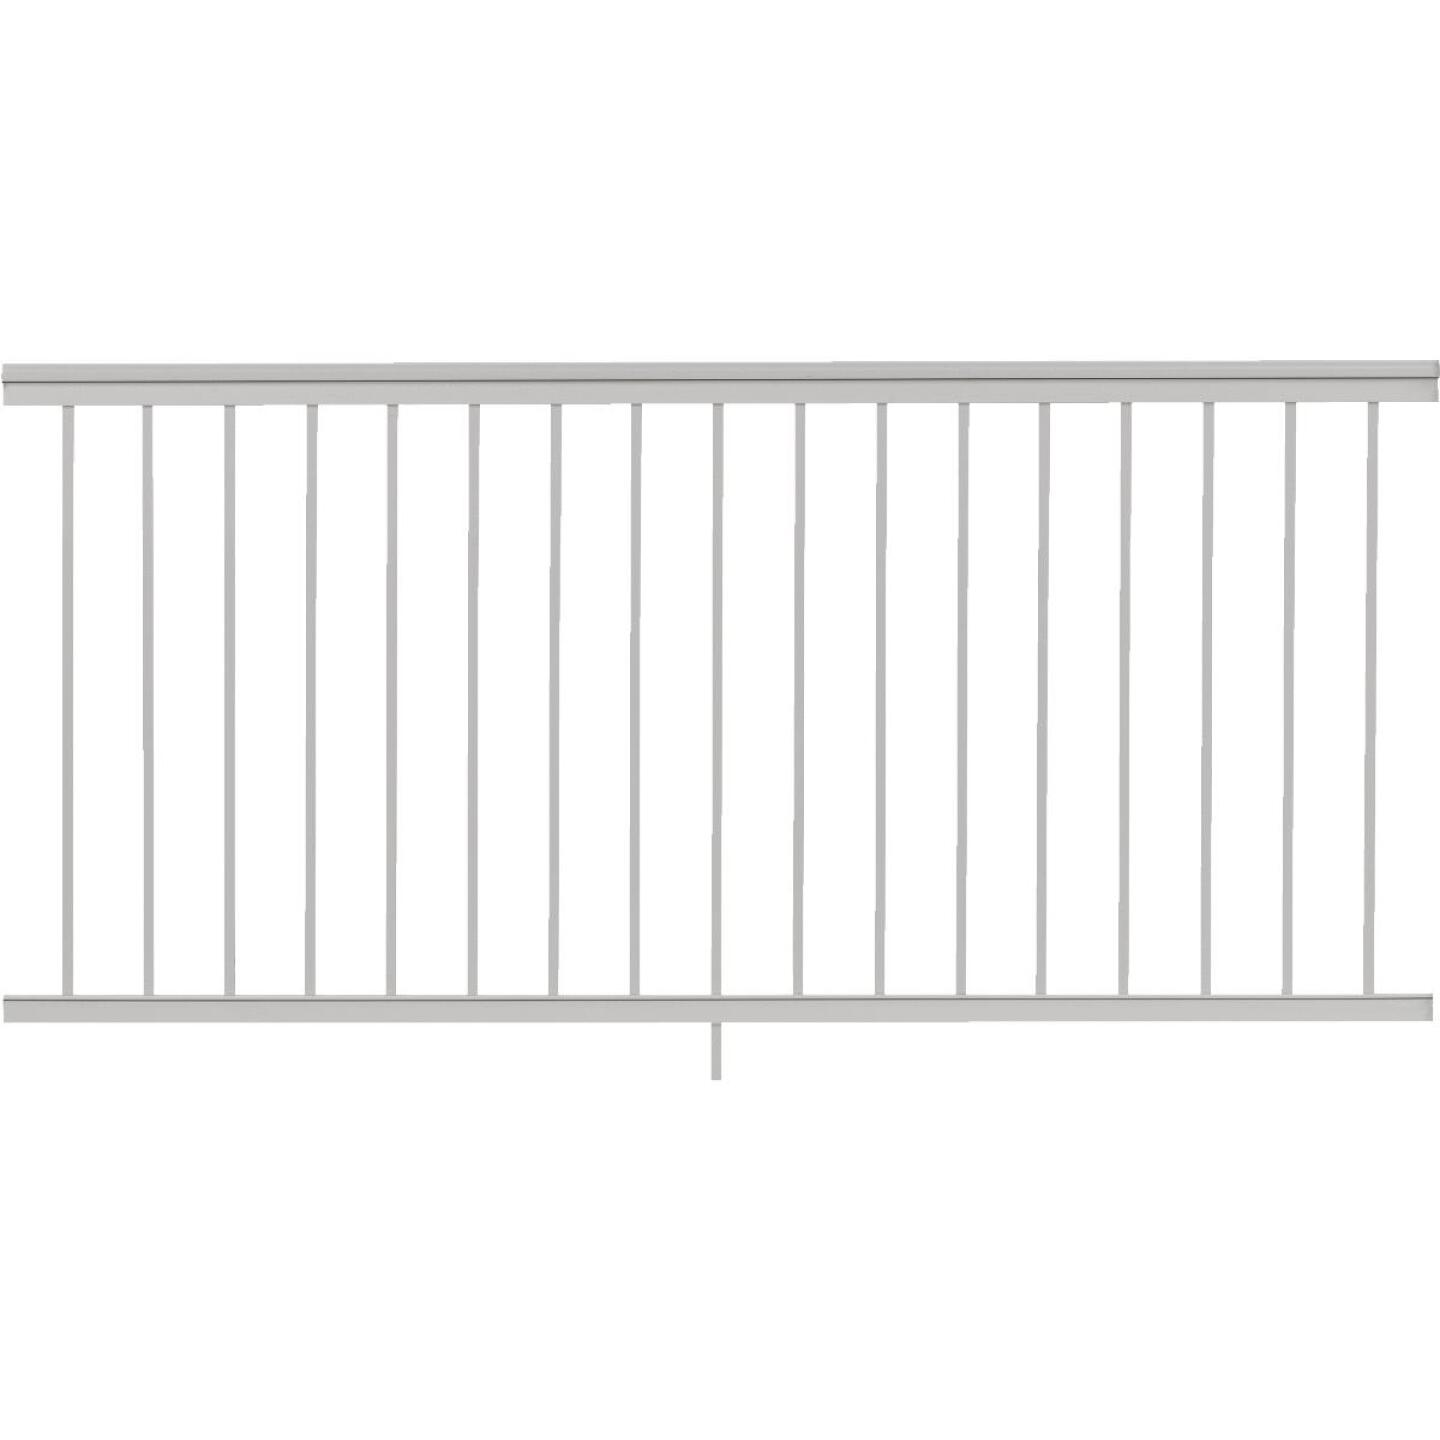 Gilpin Summit 36 In. H. x 6 Ft. L. White Aluminum Railing Image 1